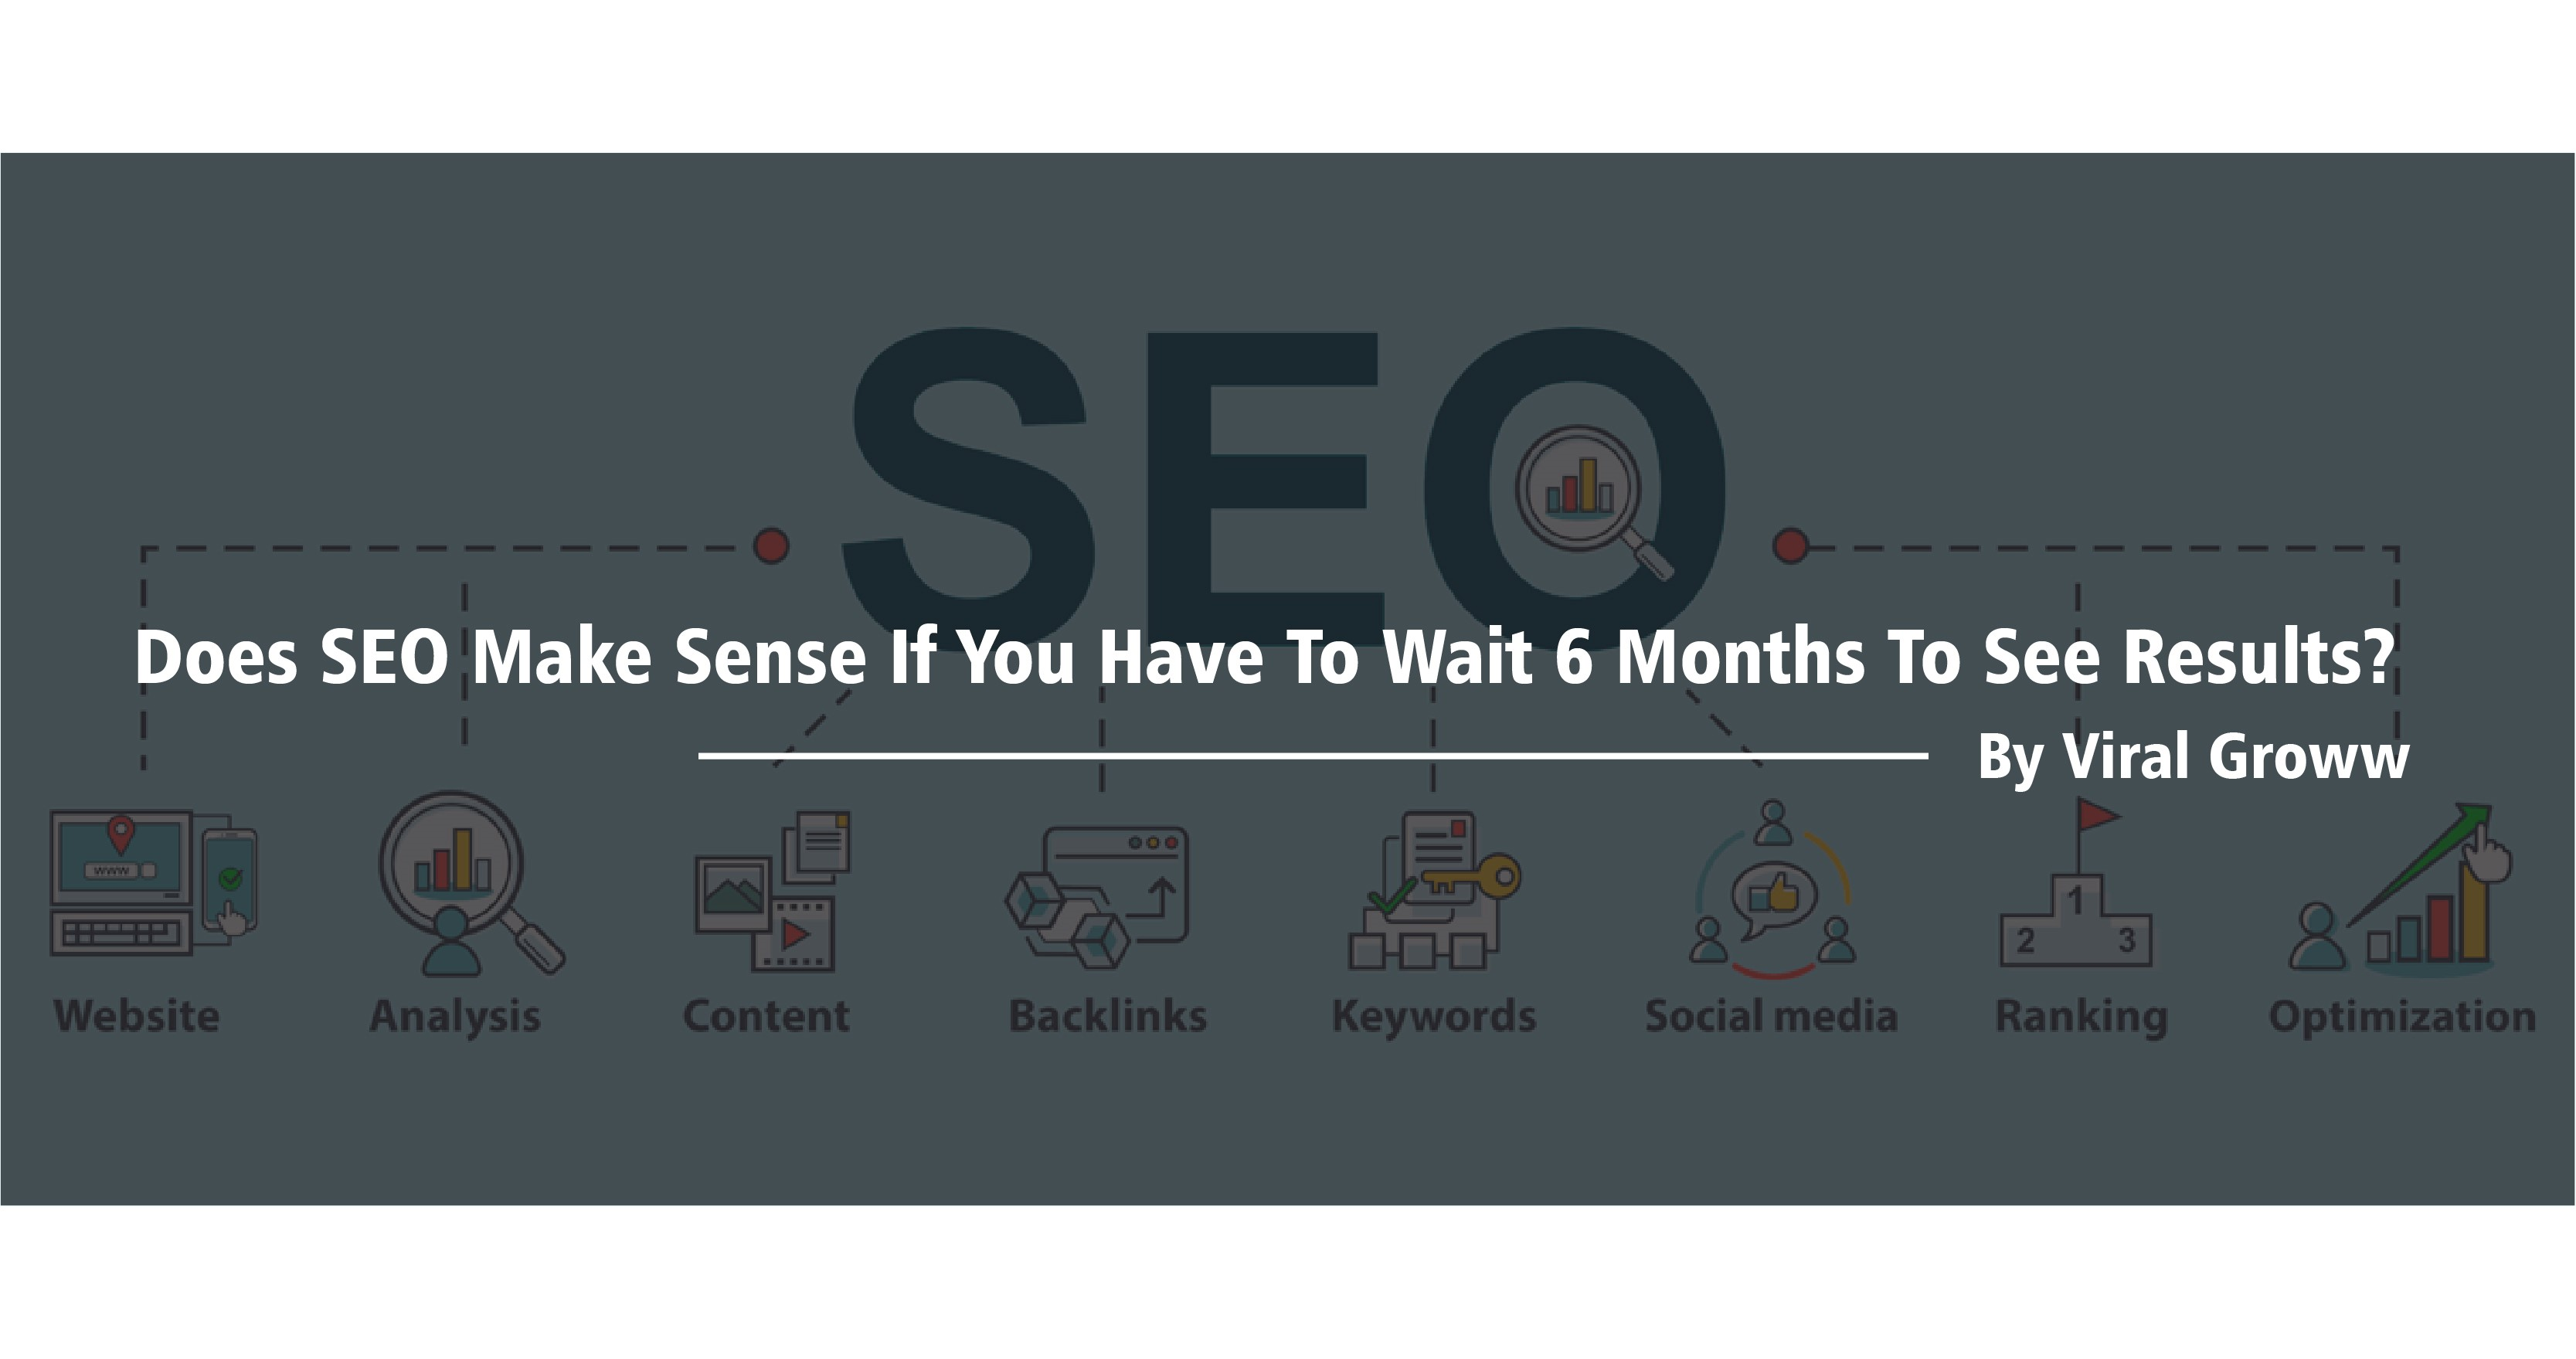 Does SEO Make Sense If You Have To Wait 6 Months To See Results?